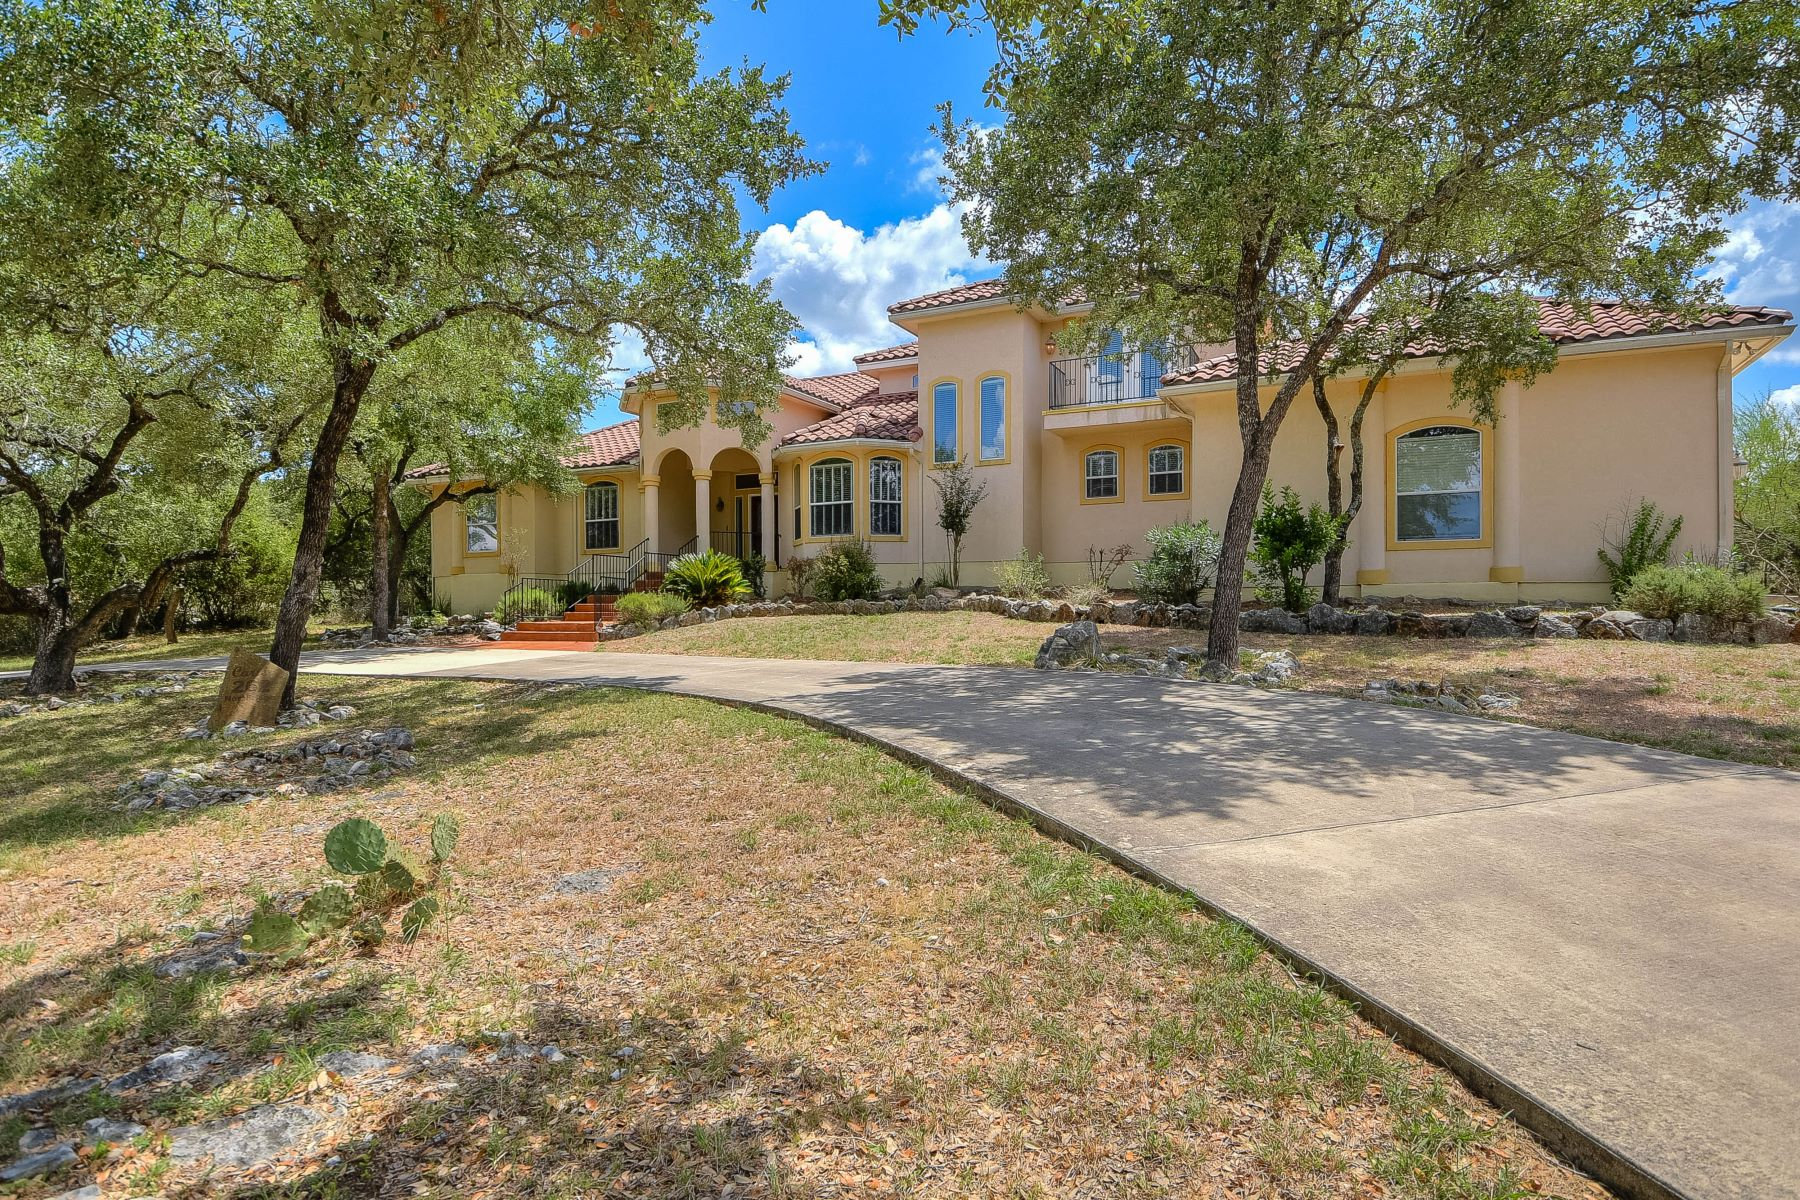 Single Family Home for Sale at Stately Home in River Chase 262 Northridge New Braunfels, Texas 78132 United States